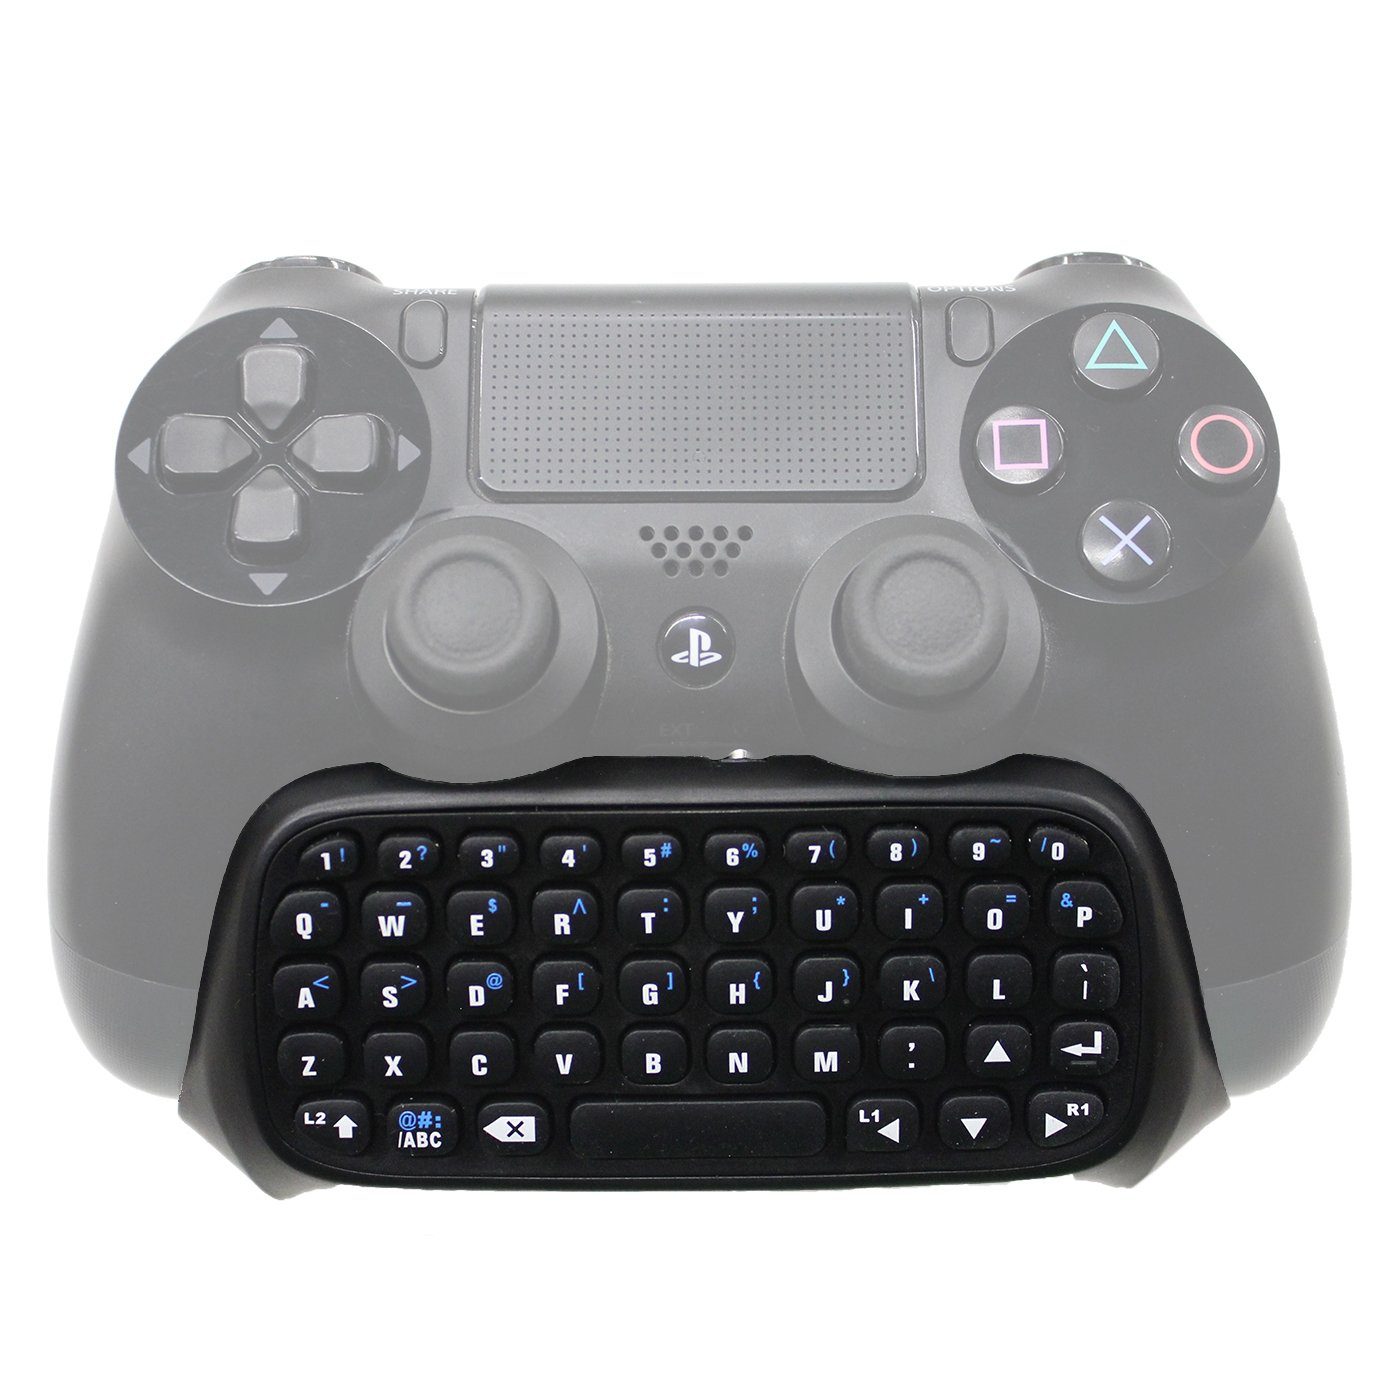 HDE Bluetooth Keypad for Sony PlayStation 4 Wireless Controllers Team Chat Message Pad Keyboard for PS4 DualShock Controllers